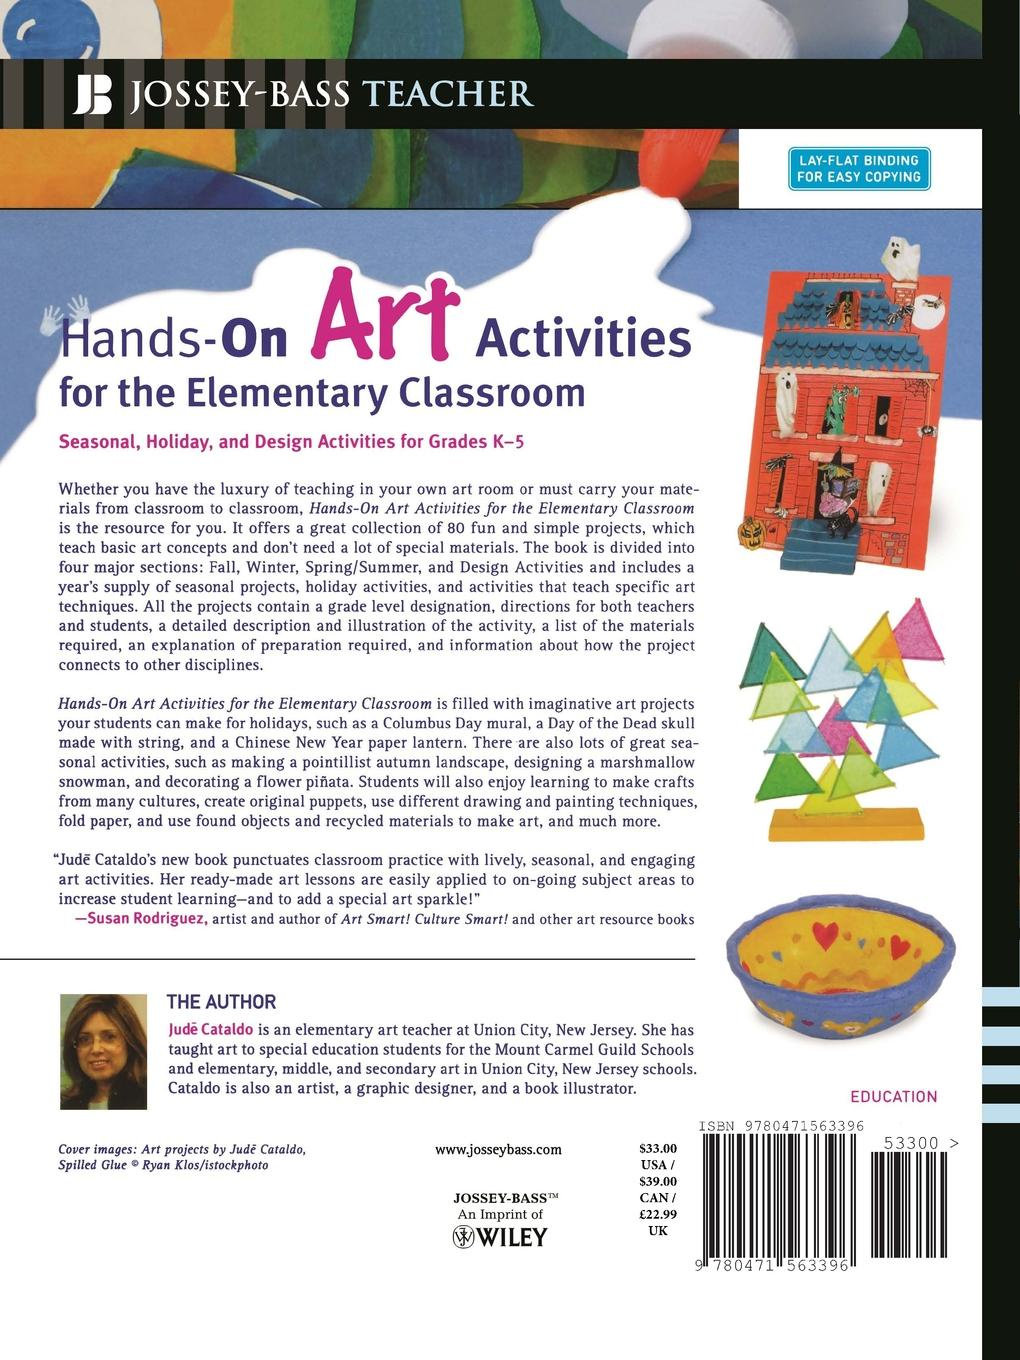 Jude Cataldo Hands-On Art Activities for the Elementary Classroom. Seasonal, Holiday, and Design Activities for Grades K-5 erin muschla teaching the common core math standards with hands on activities grades 6 8